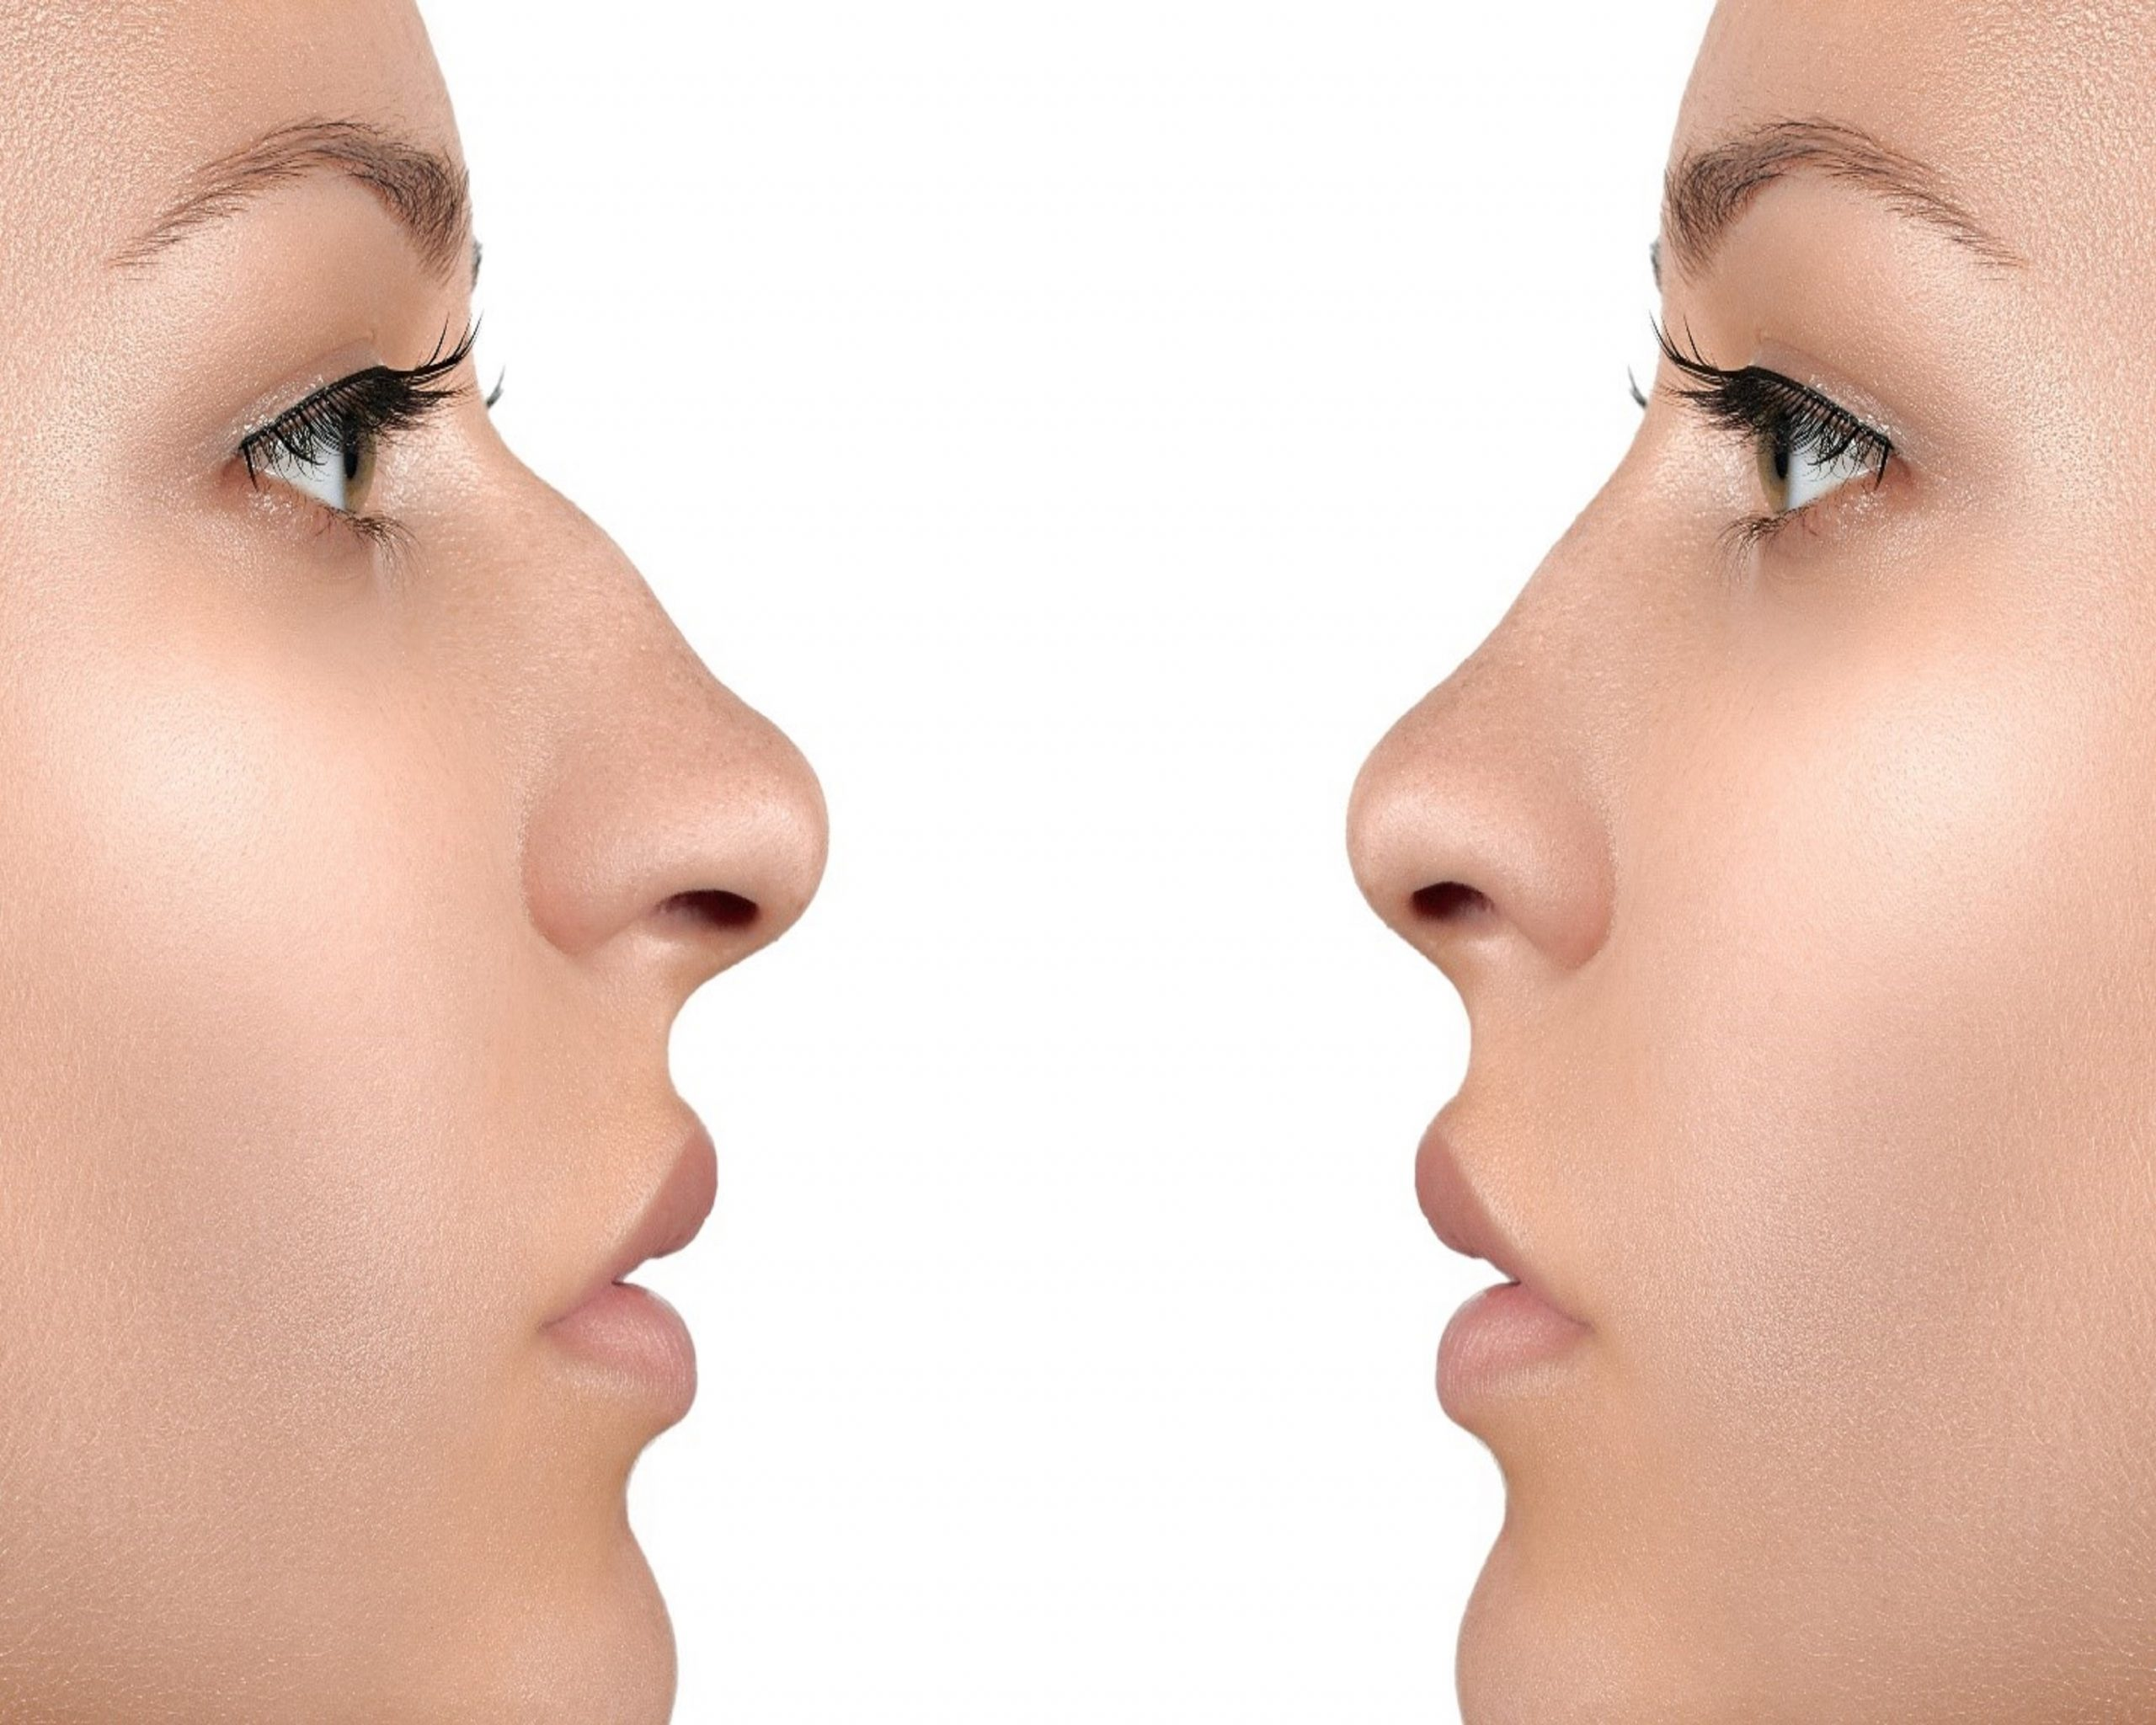 Is Rhinoplasty Right For You? What You Need To Know